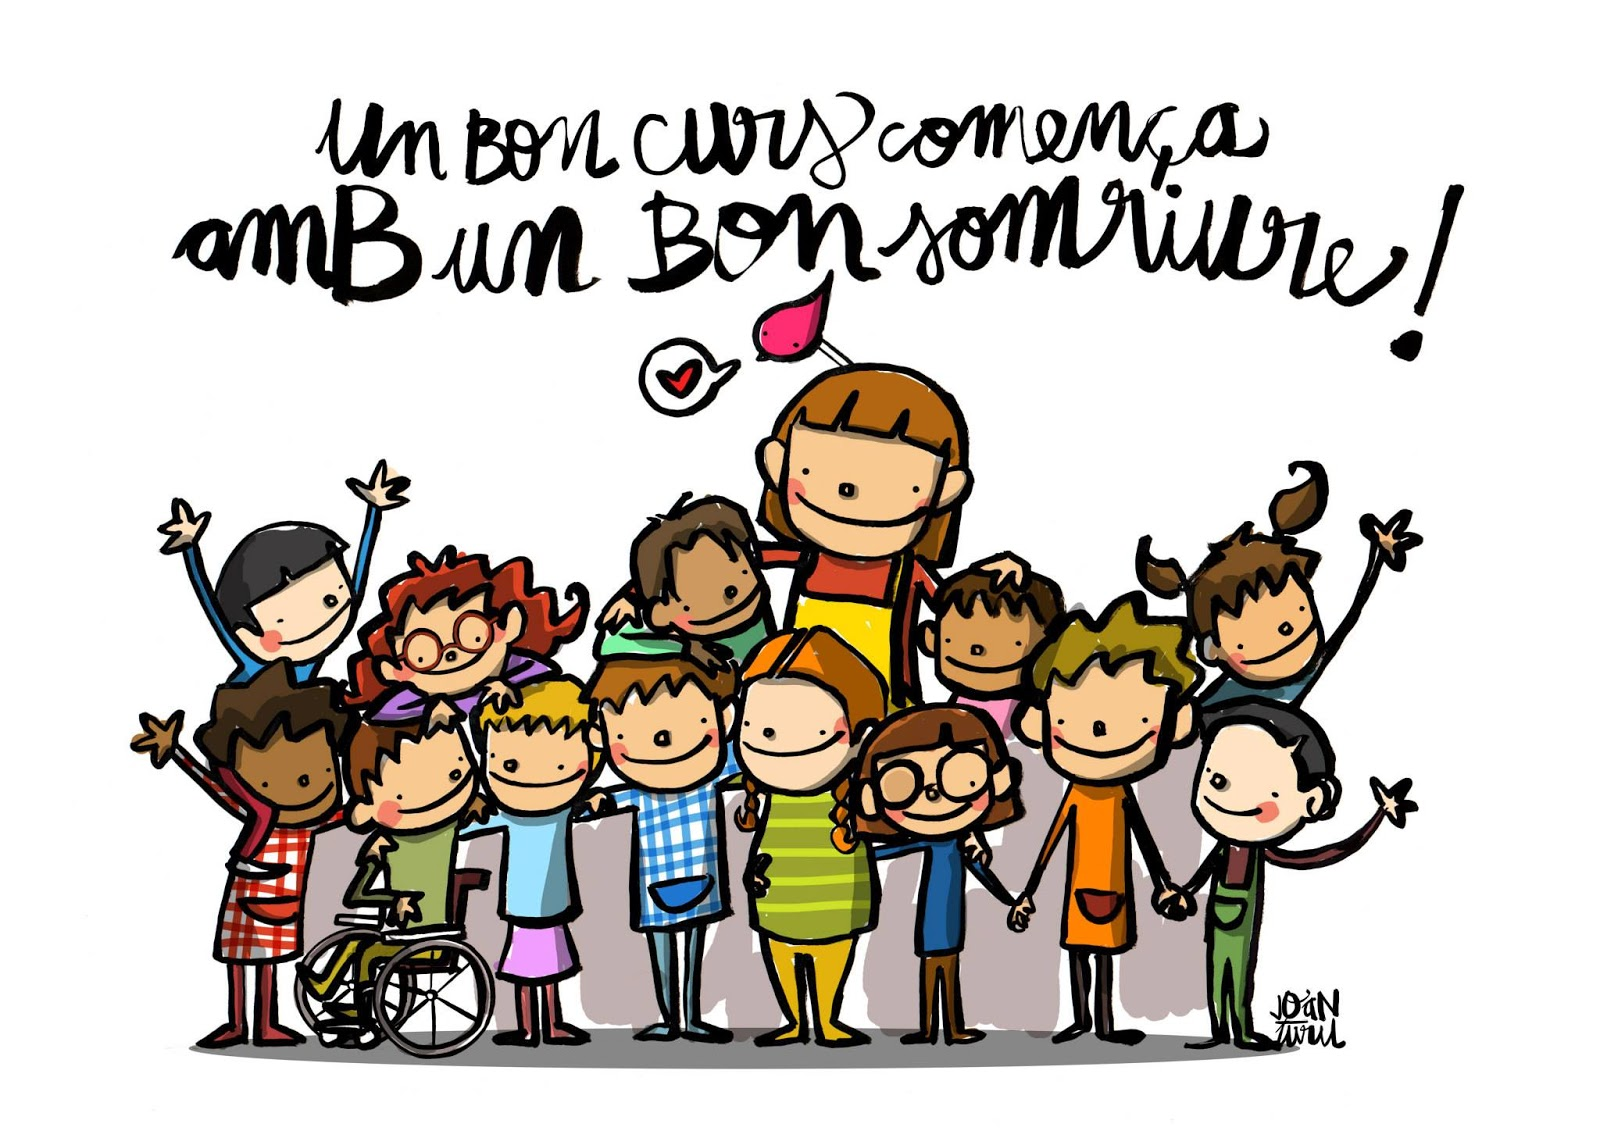 Image result for un bon curs comença